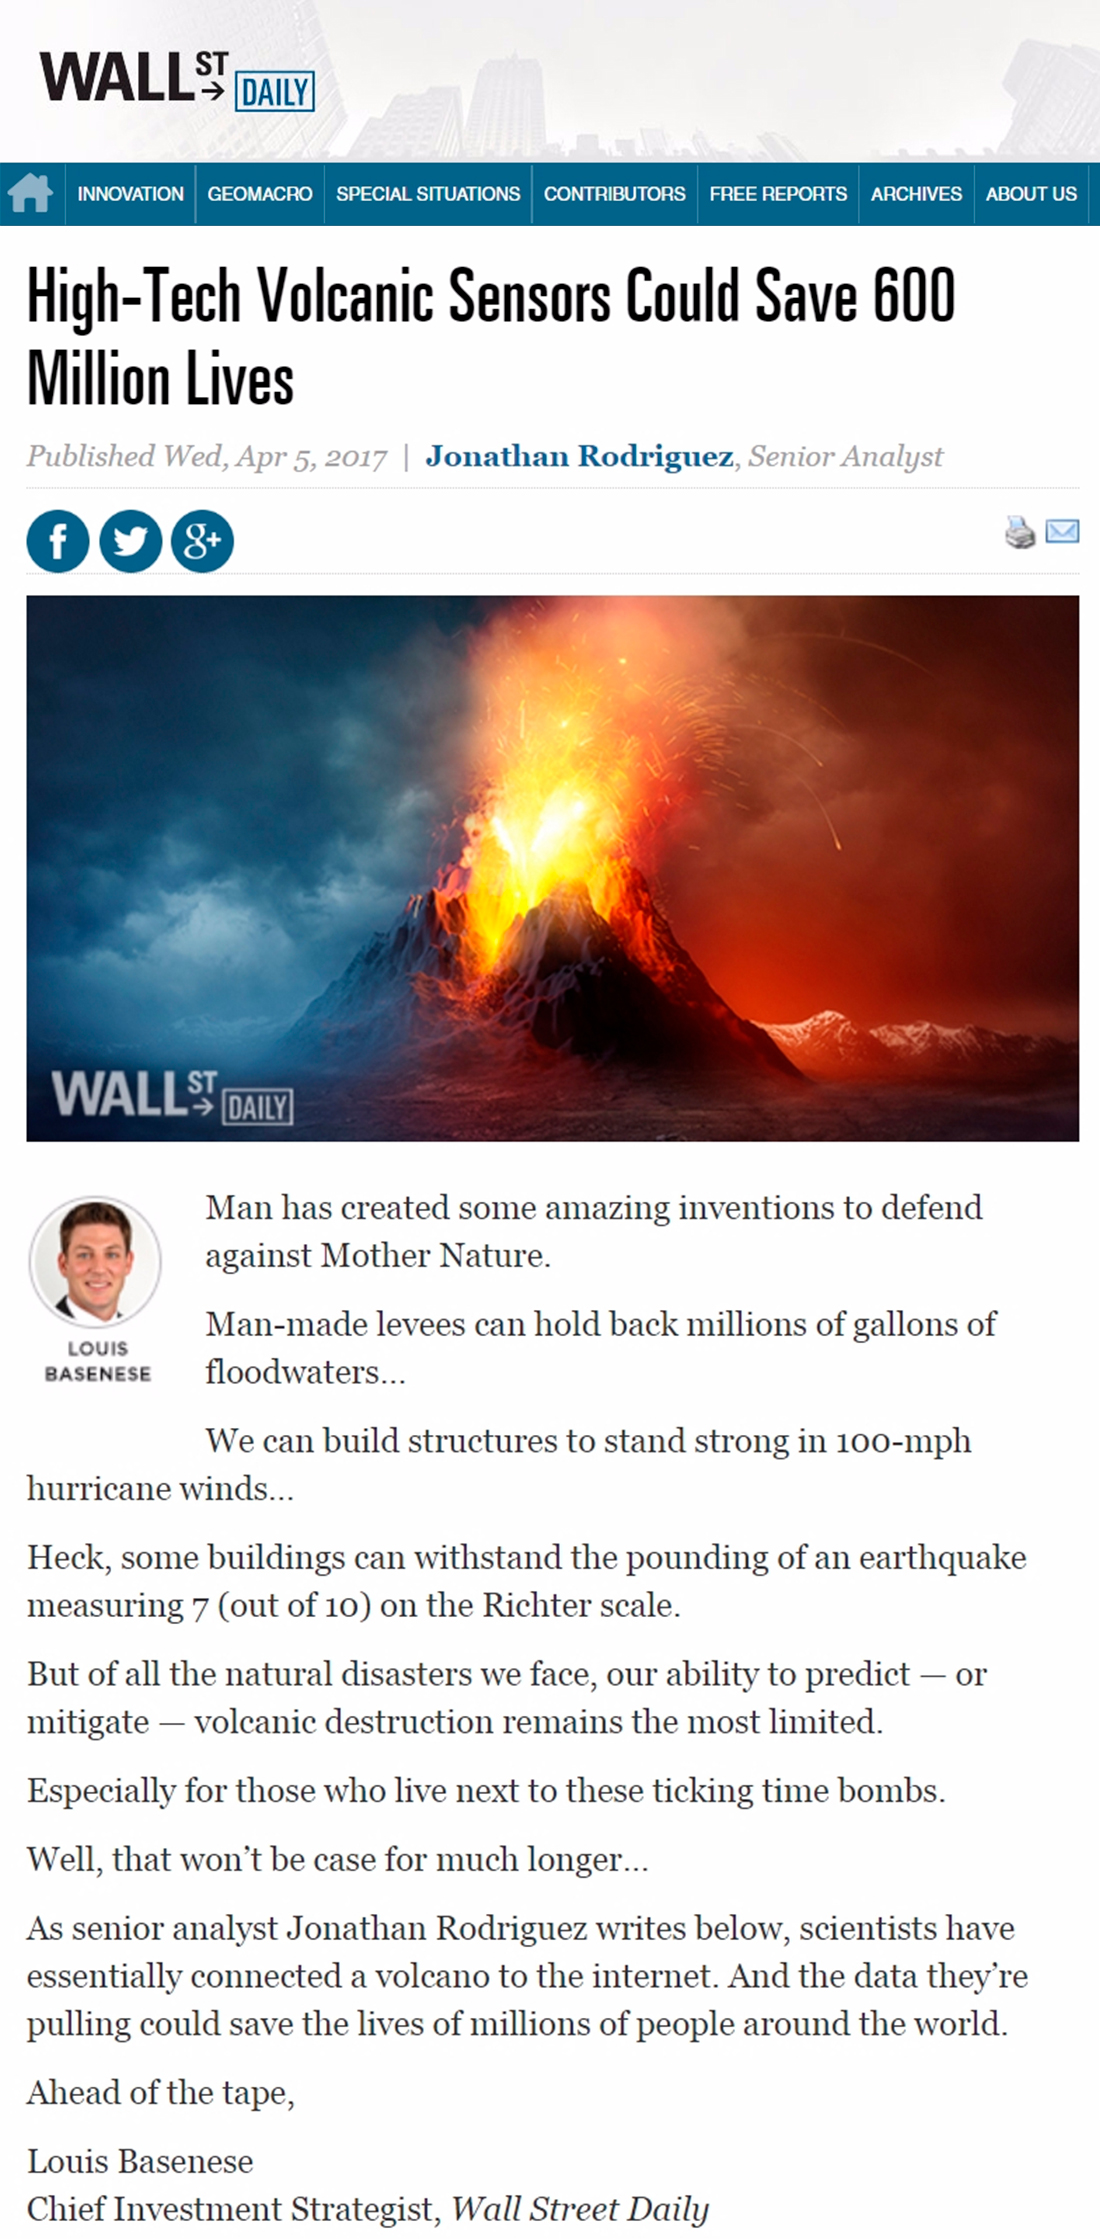 Wall Street Daily – High-Tech Volcanic Sensors